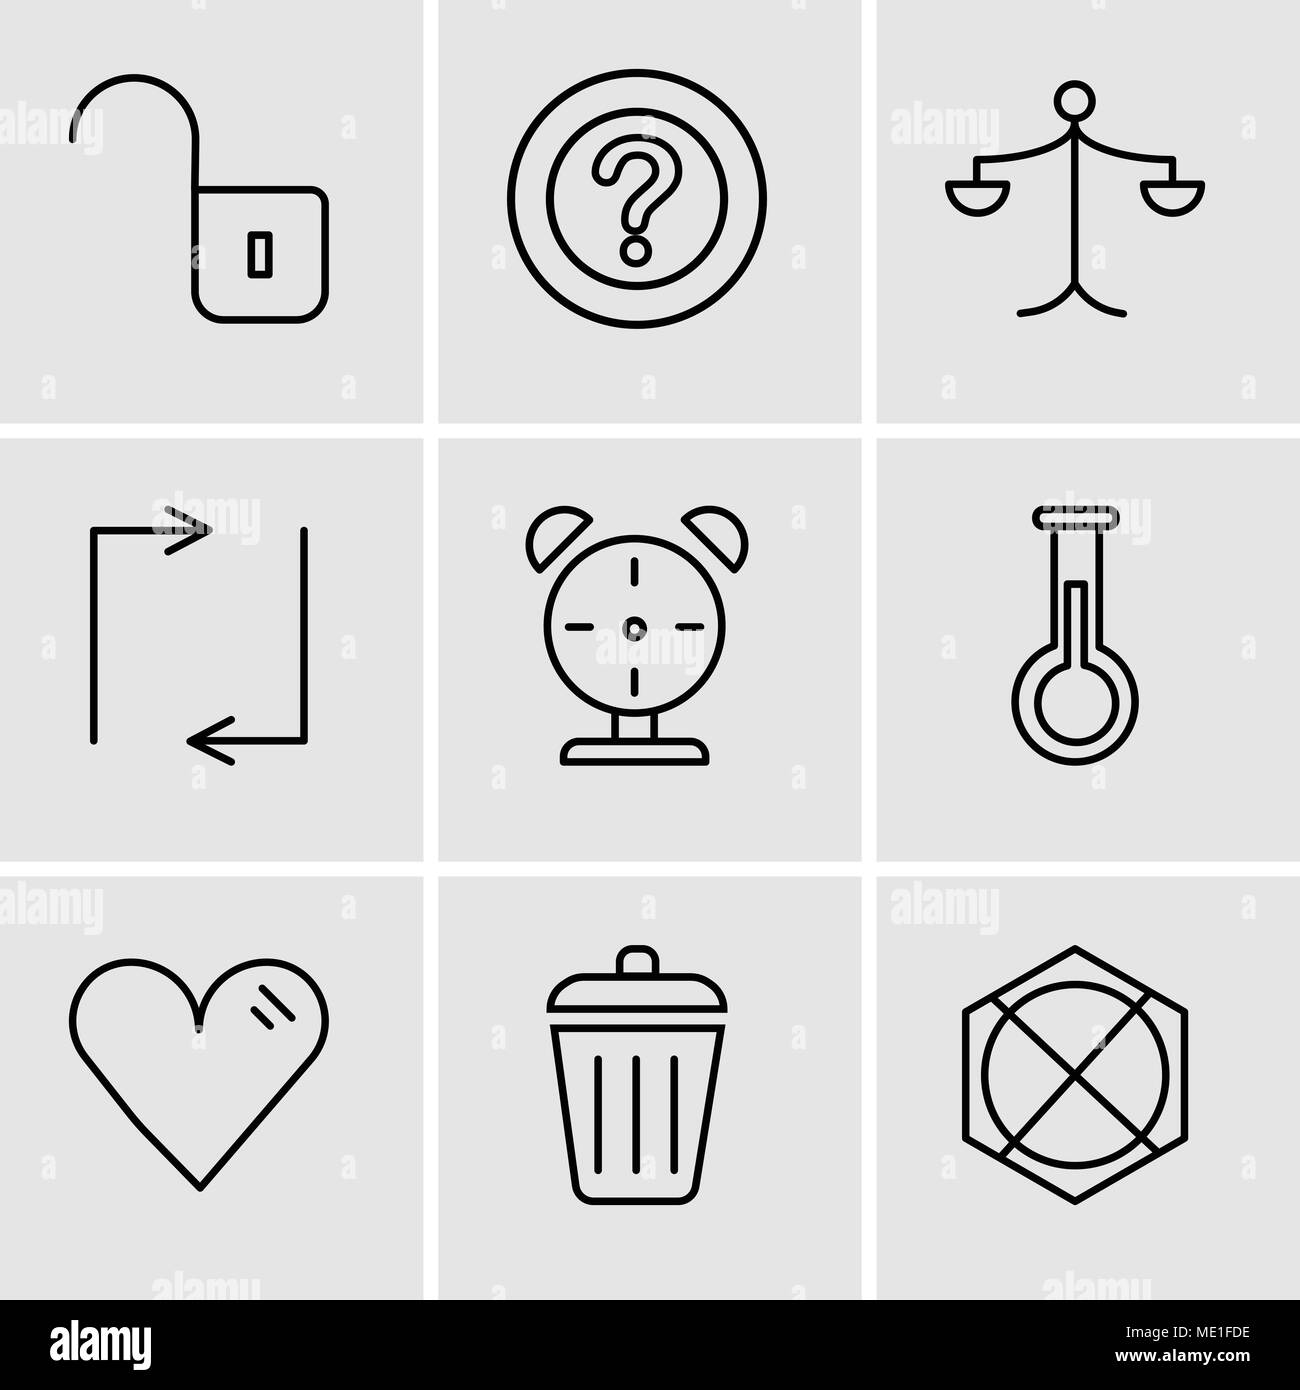 Set Of 9 simple editable icons such as Arrow pointing to up, Dustbin, Heart, Erlenmeyer Flask, Alarm clock, Update arrows, Weighing scale, Question ma - Stock Vector